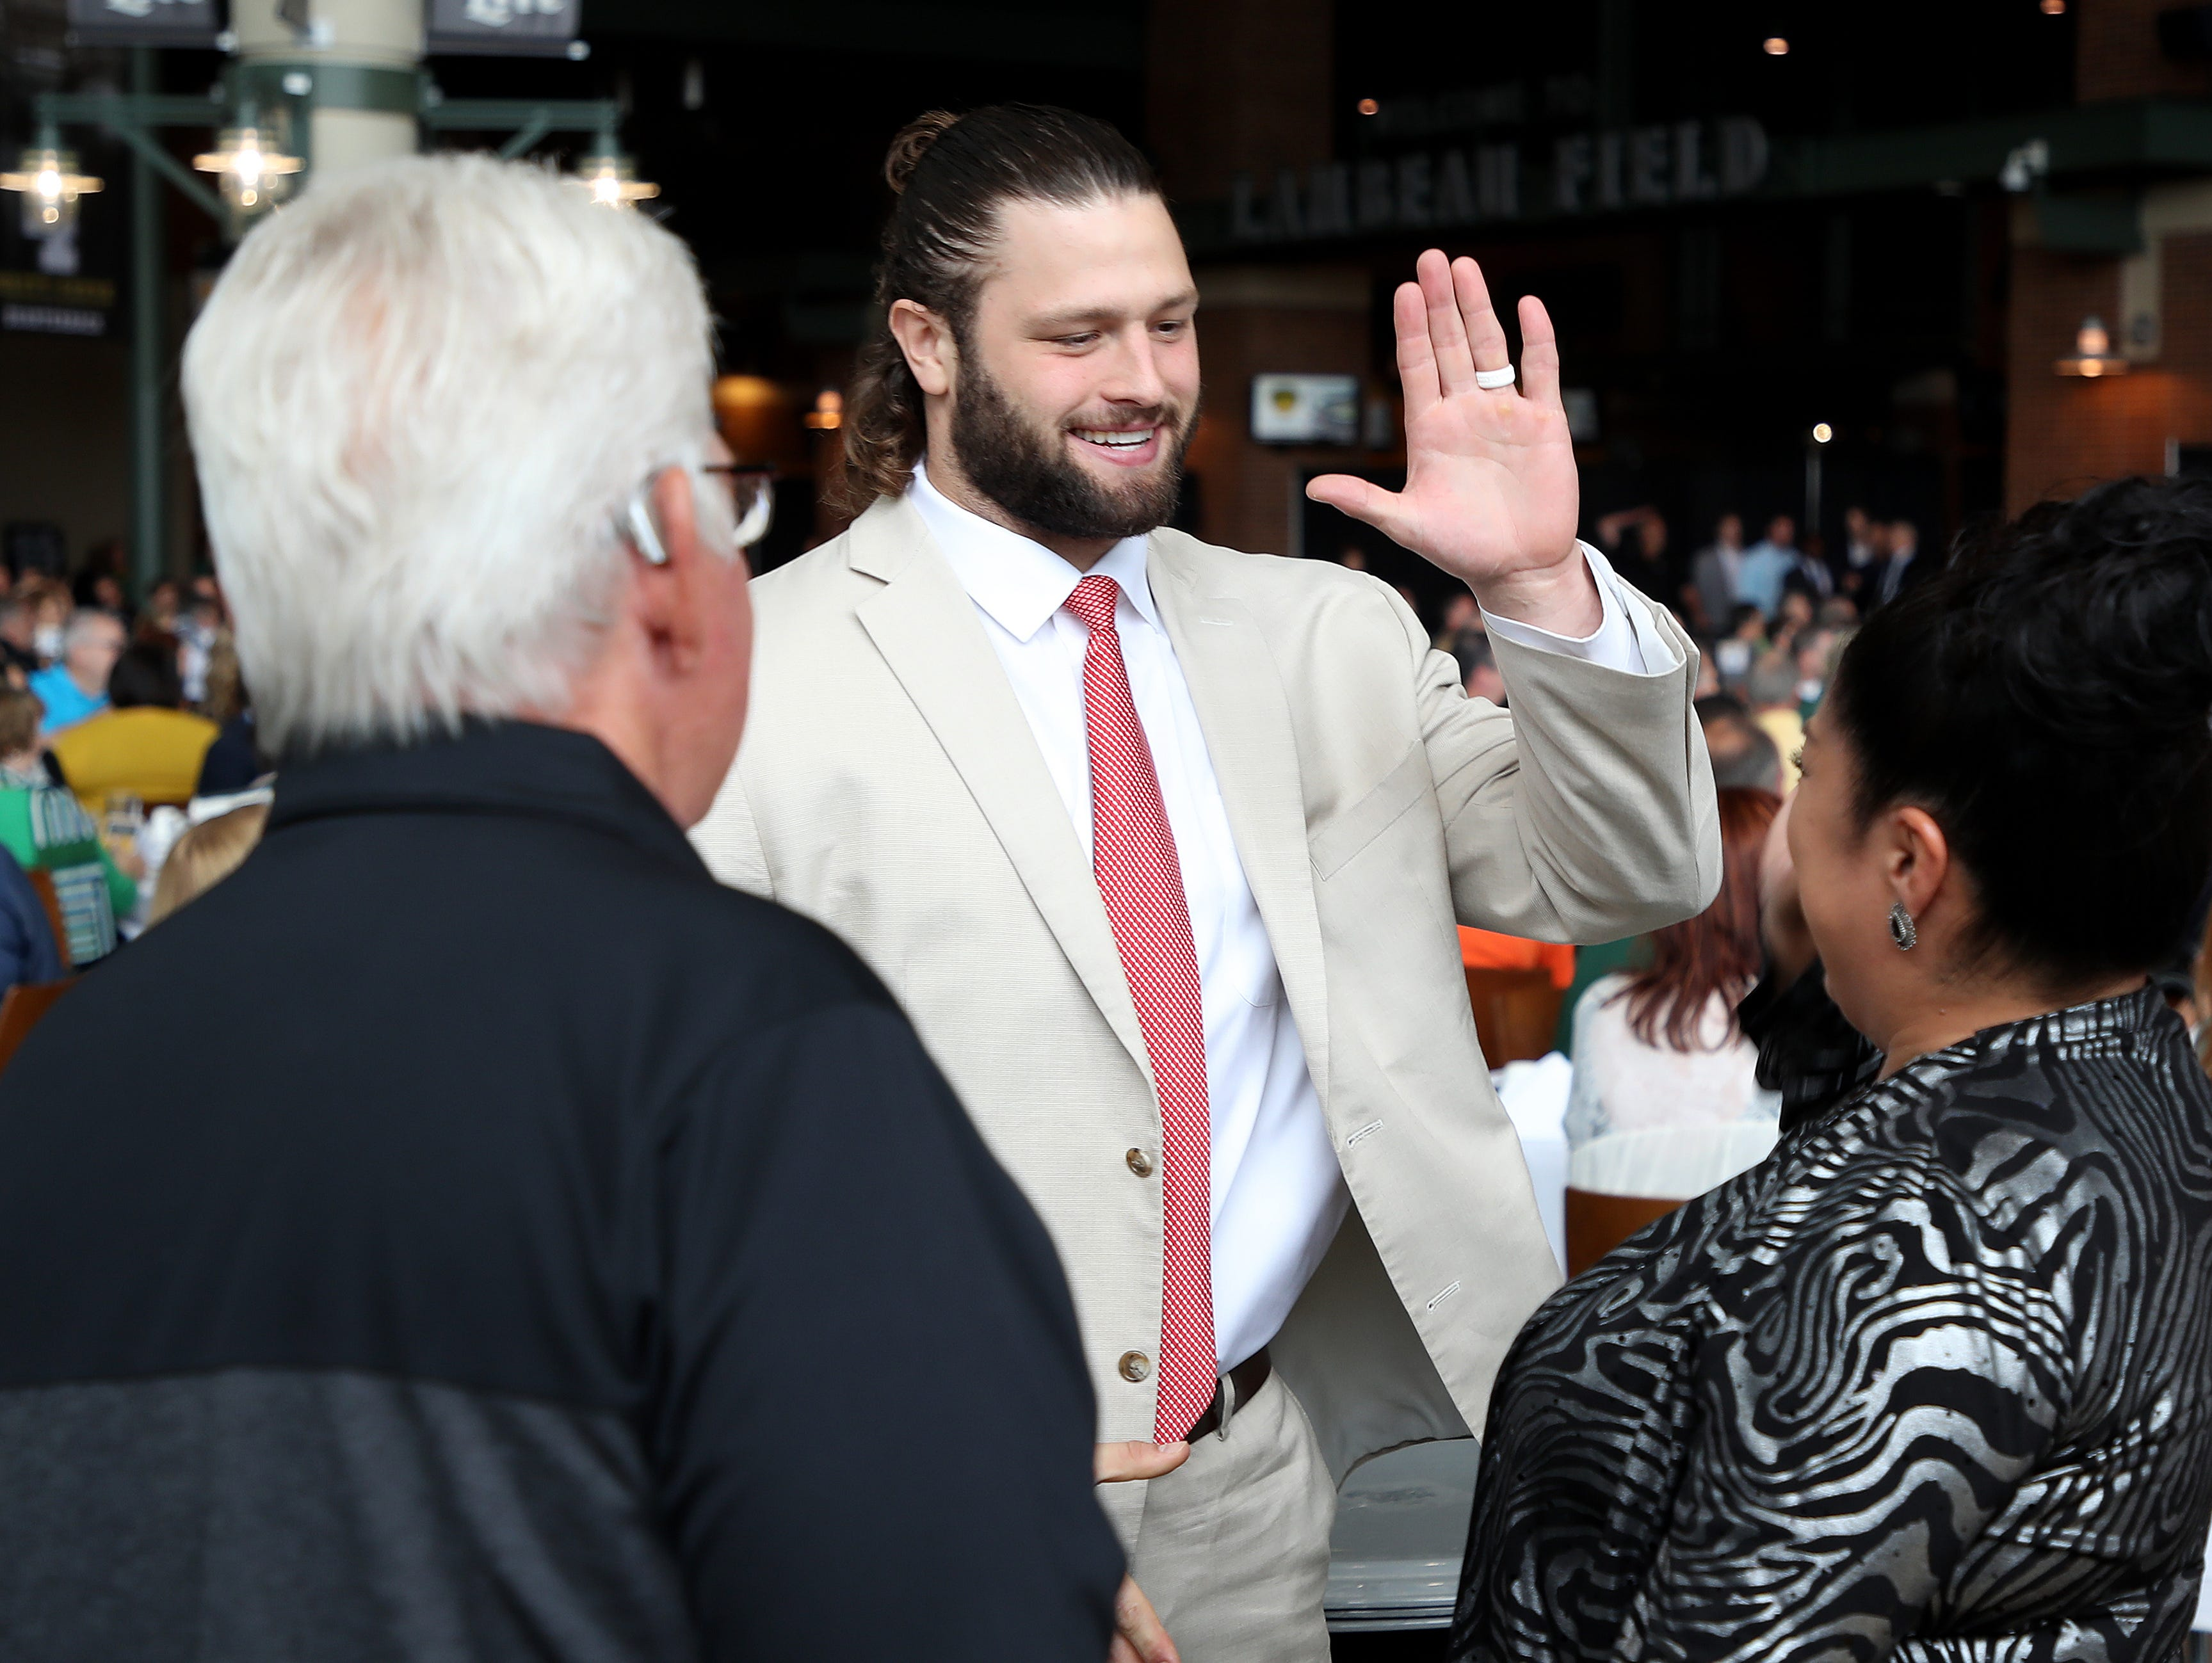 Green Bay Packers linebacker Vince Biegel (45) greets his table during the Green Bay Chamber of Commerce Welcome Back Packers Luncheon at Lambeau Field Wednesday, August 29, 2018 in Green Bay, Wis.